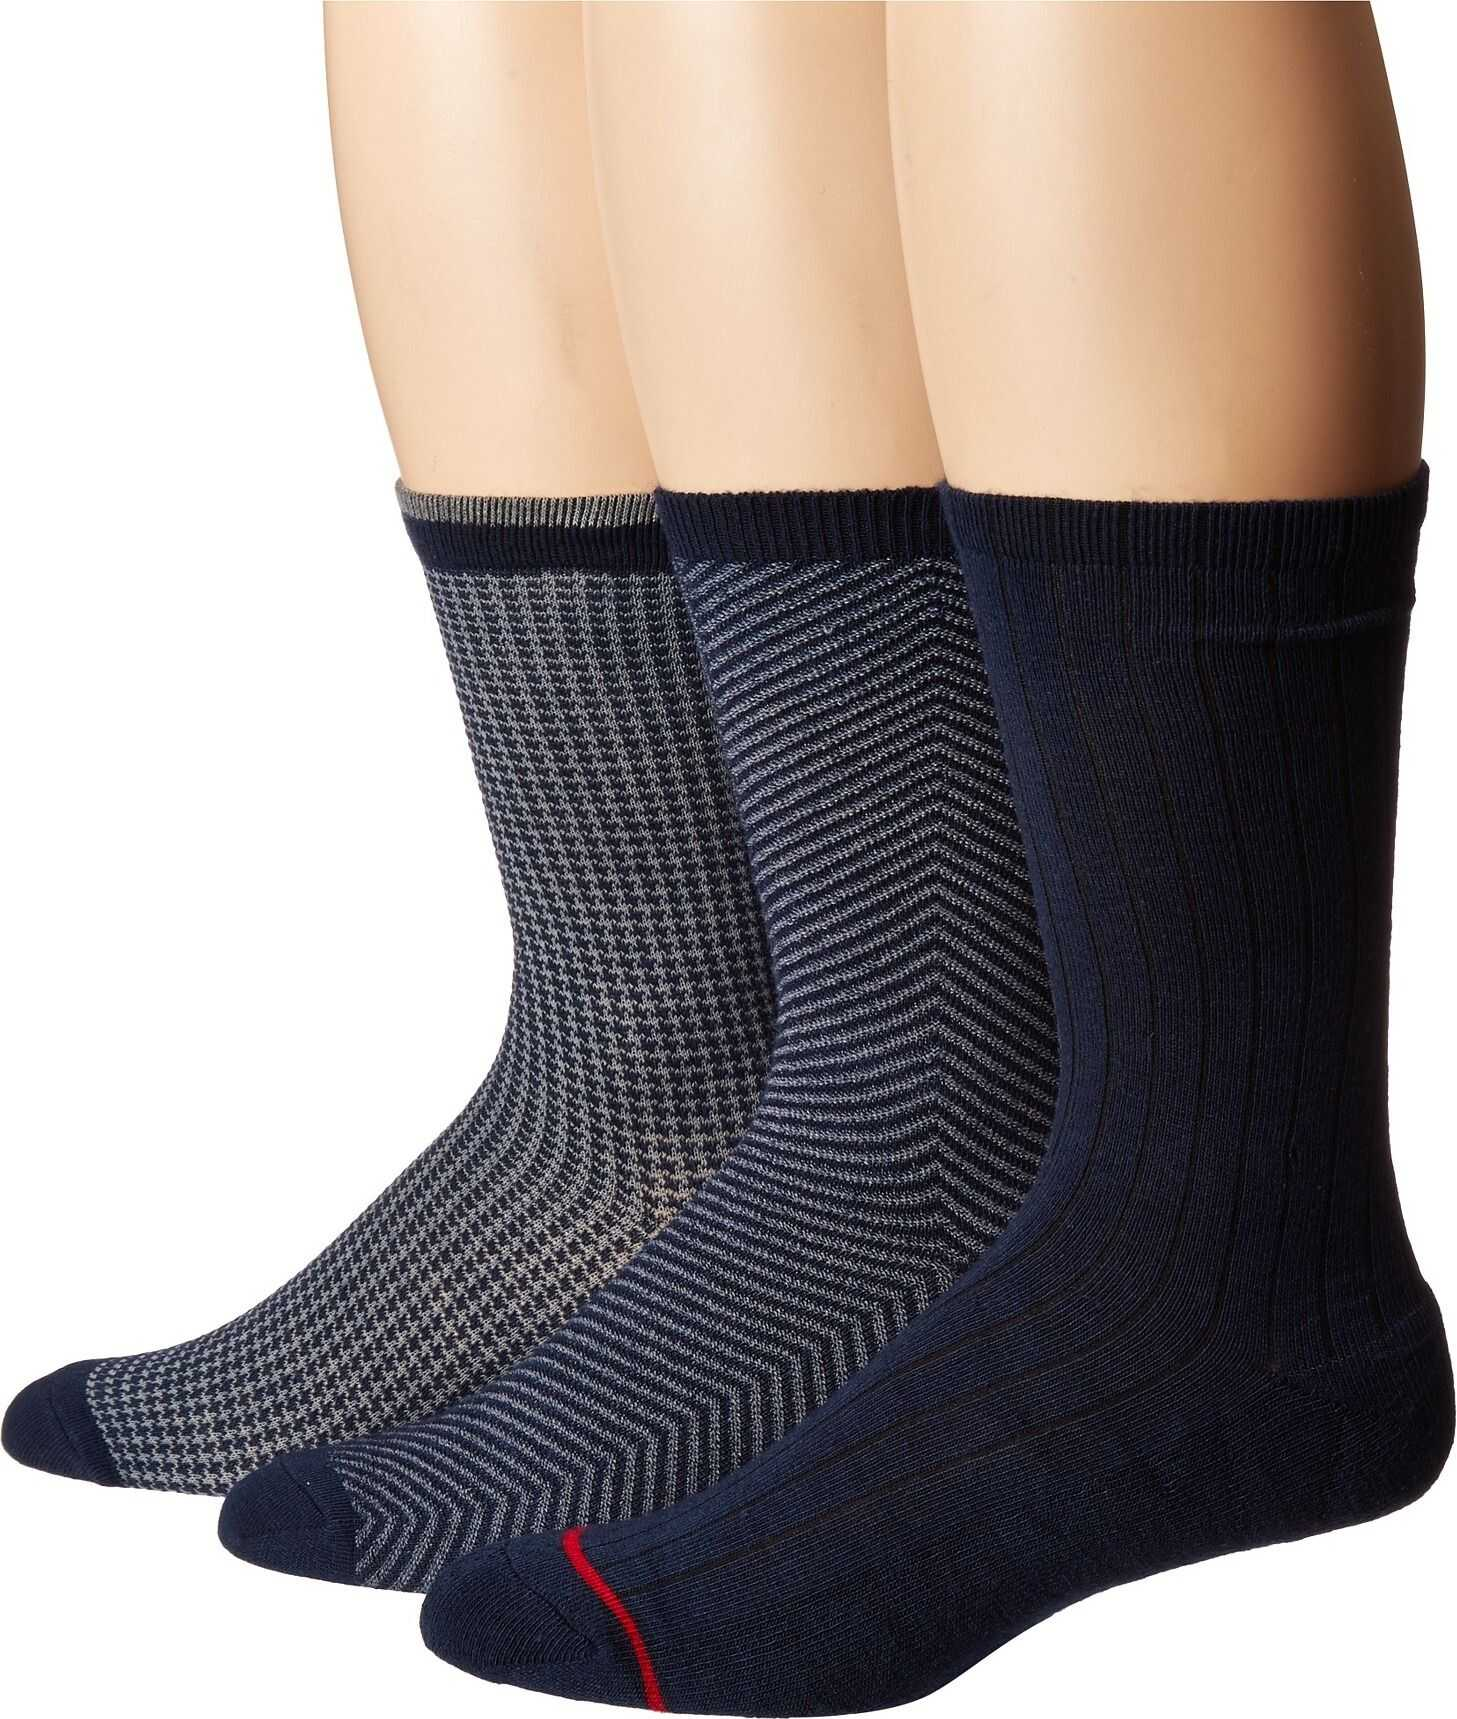 UGG Dominic Crew Socks Gift Set Navy Multi